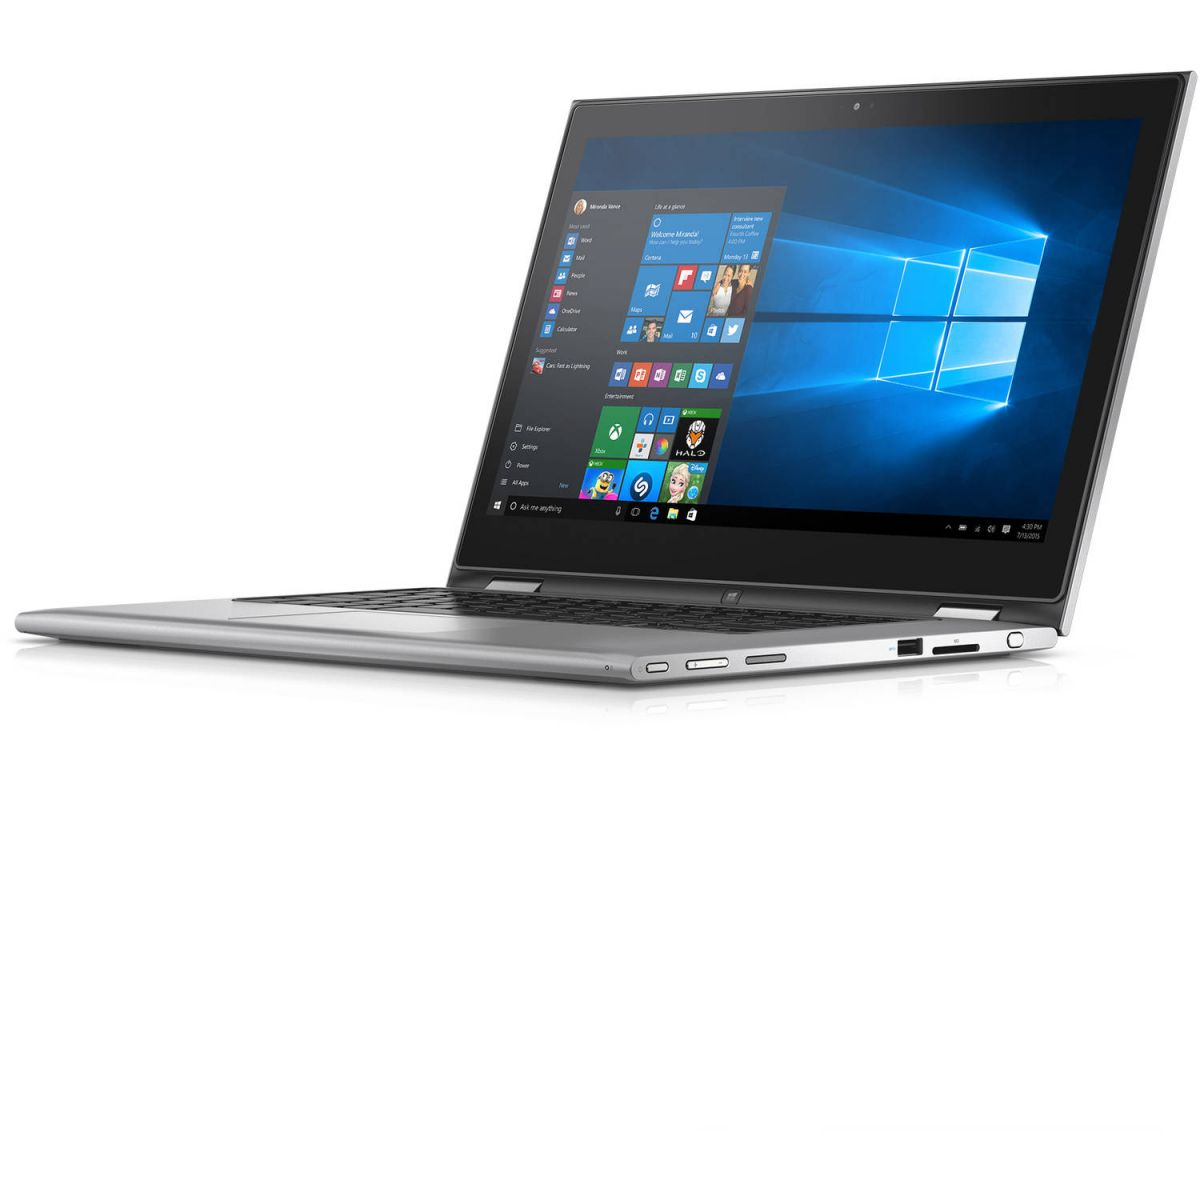 Notebook Dell Inspiron 7359 2-1 I7-6500U 3.1Ghz| 500Gb| 8Gb| 13| Touch| W10Hom| Cinza